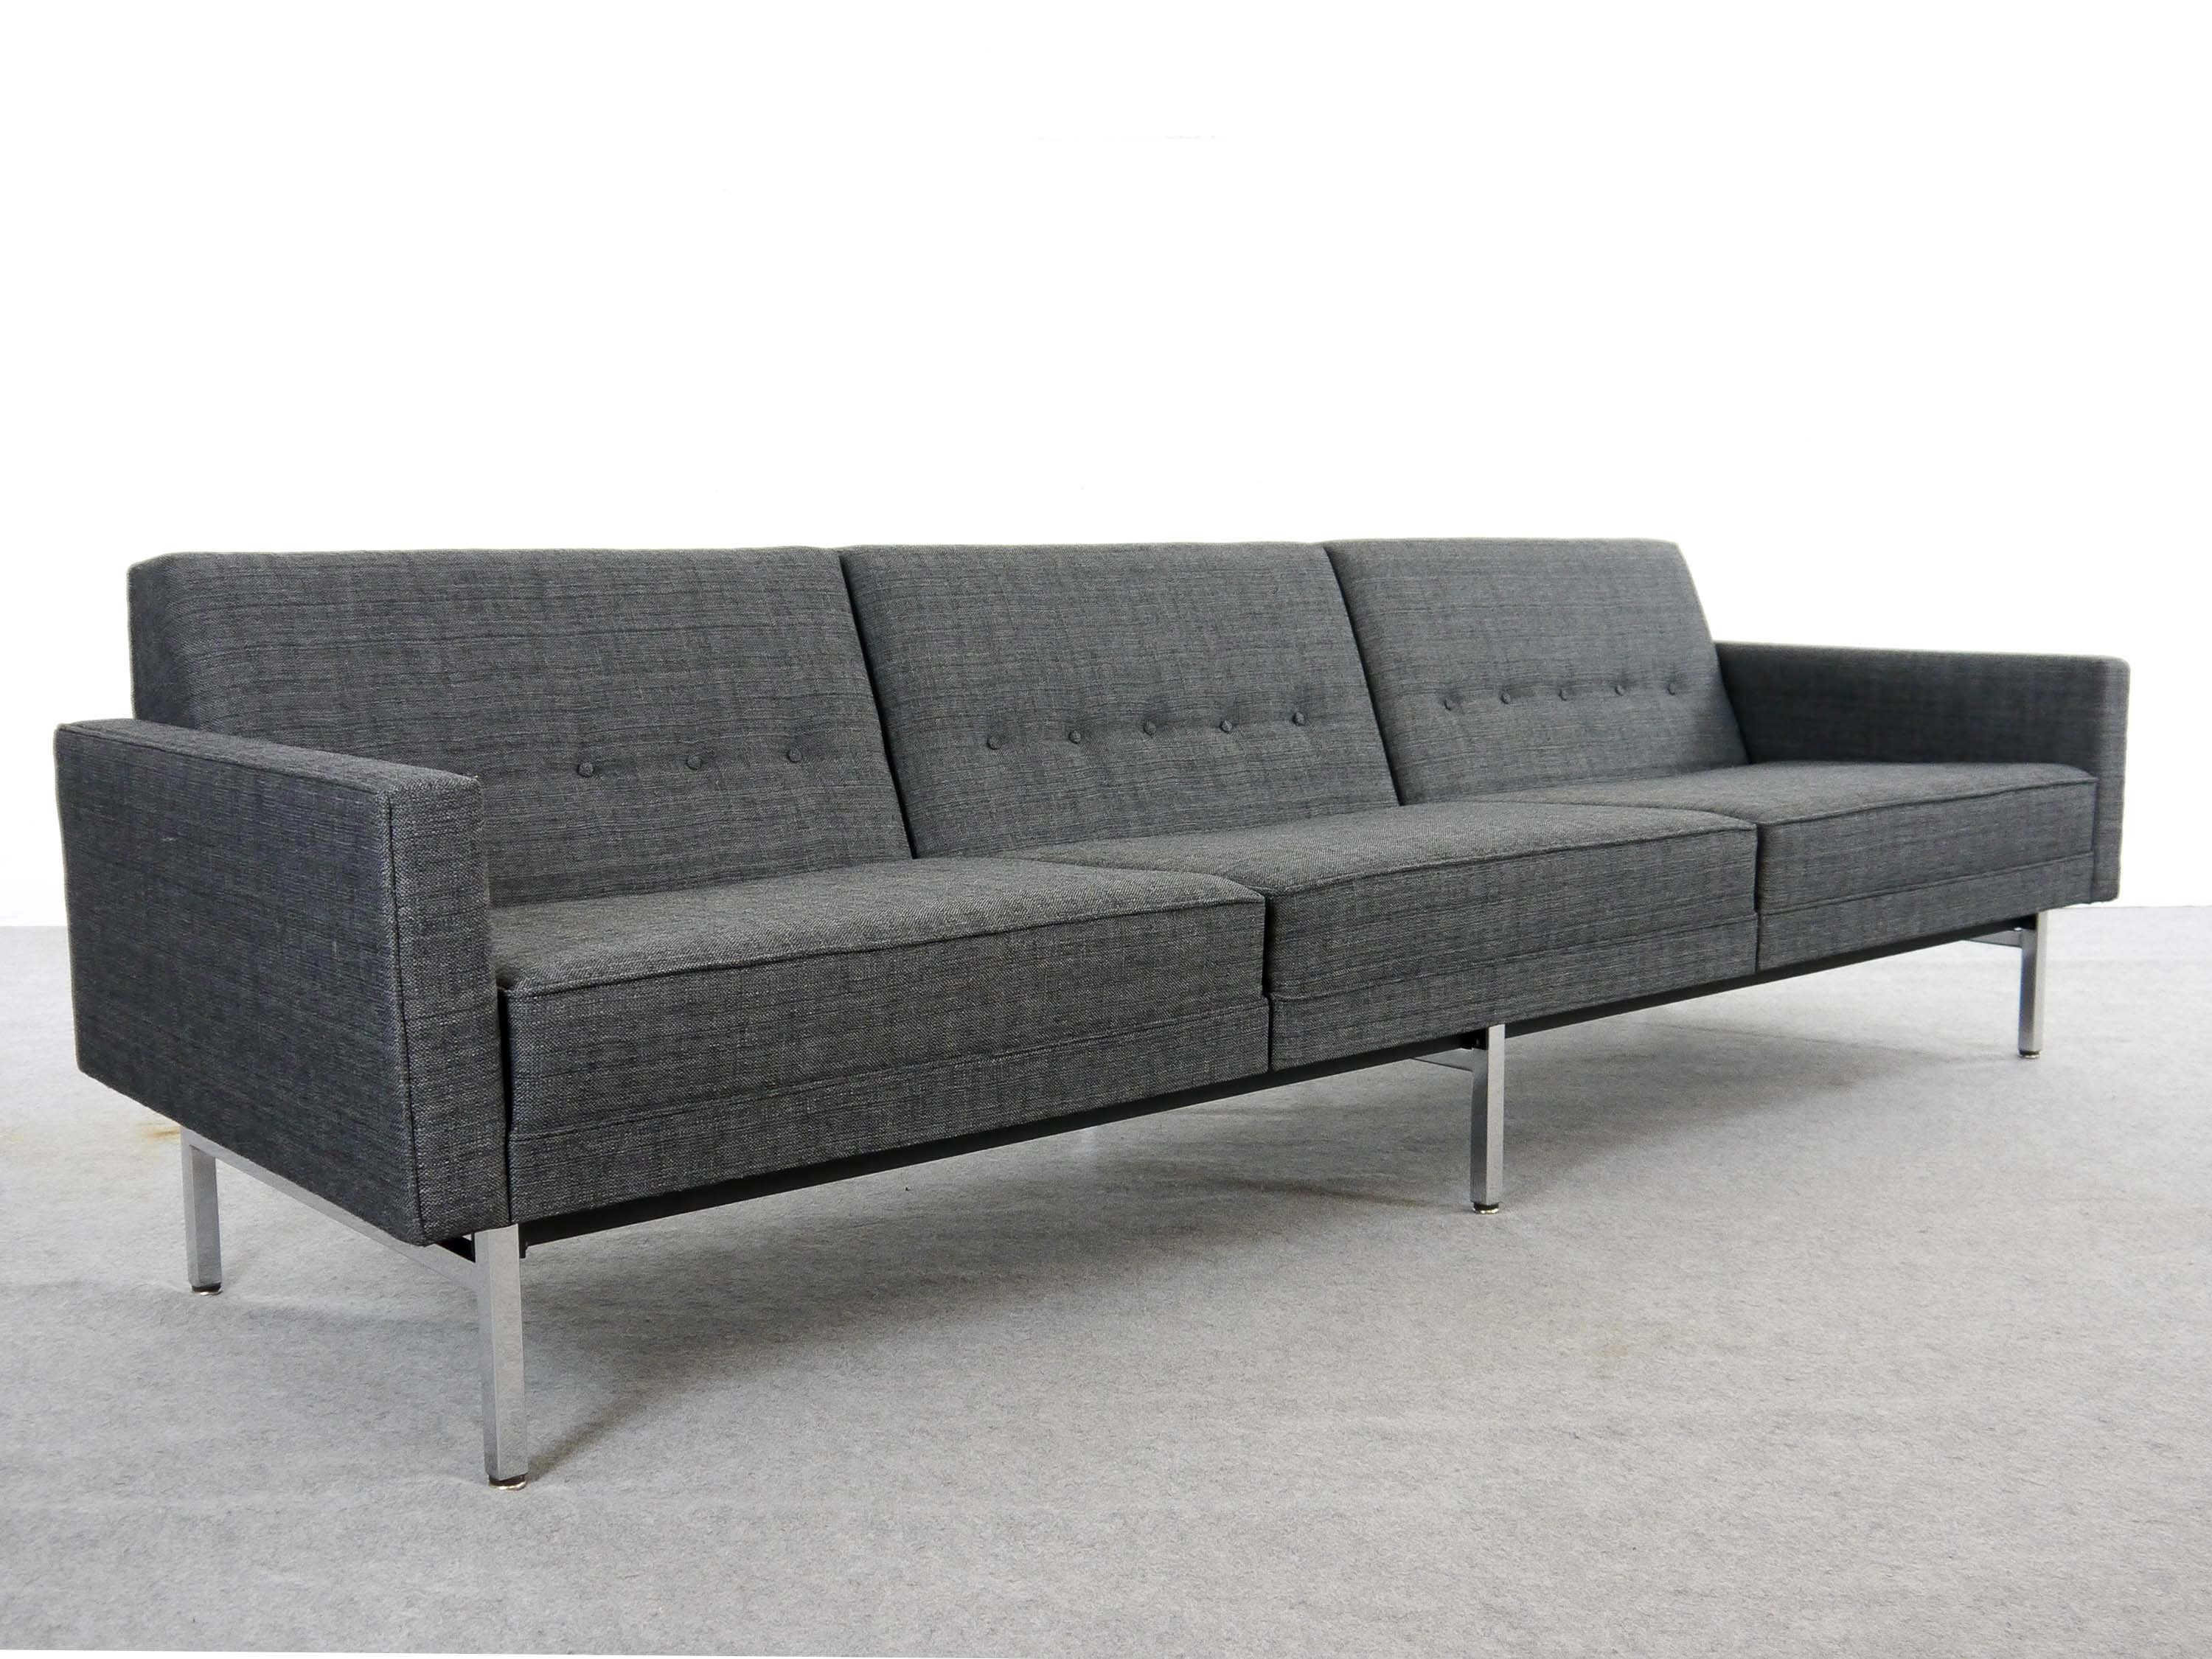 Outstanding Grey Fabric Modular Seating Sofa By George Nelson For Herman Miller 1965 Machost Co Dining Chair Design Ideas Machostcouk